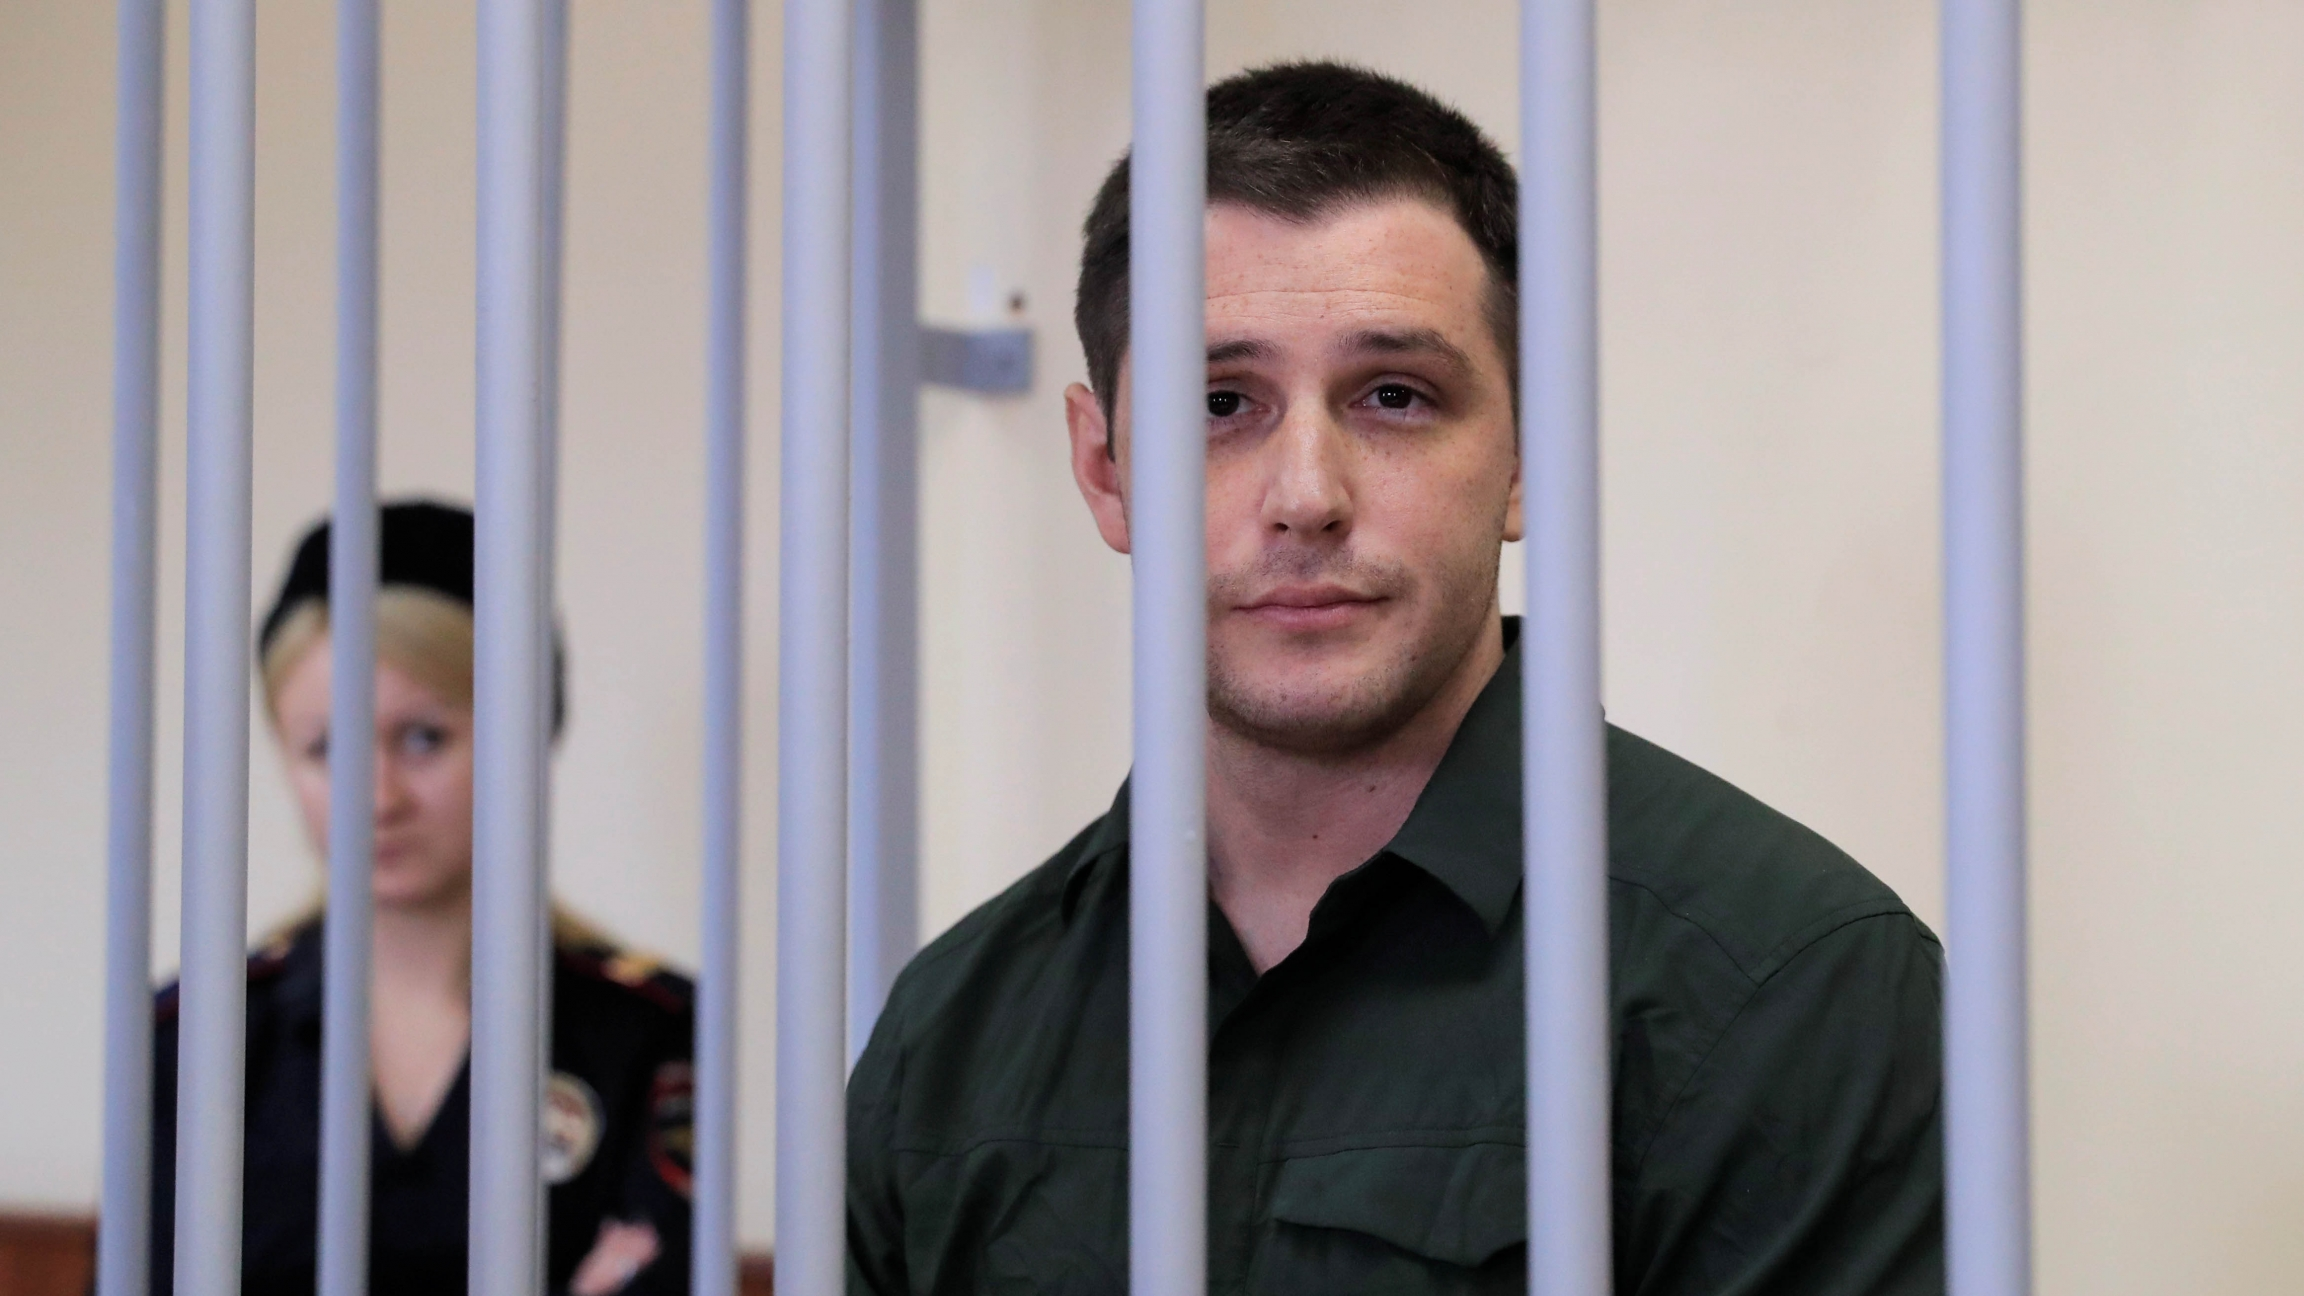 USex-MarineTrevorReed, who was detained in 2019 and accused of assaulting police officers, stands inside a defendants' cage during a court hearing in Moscow, Russia, March 11, 2020.